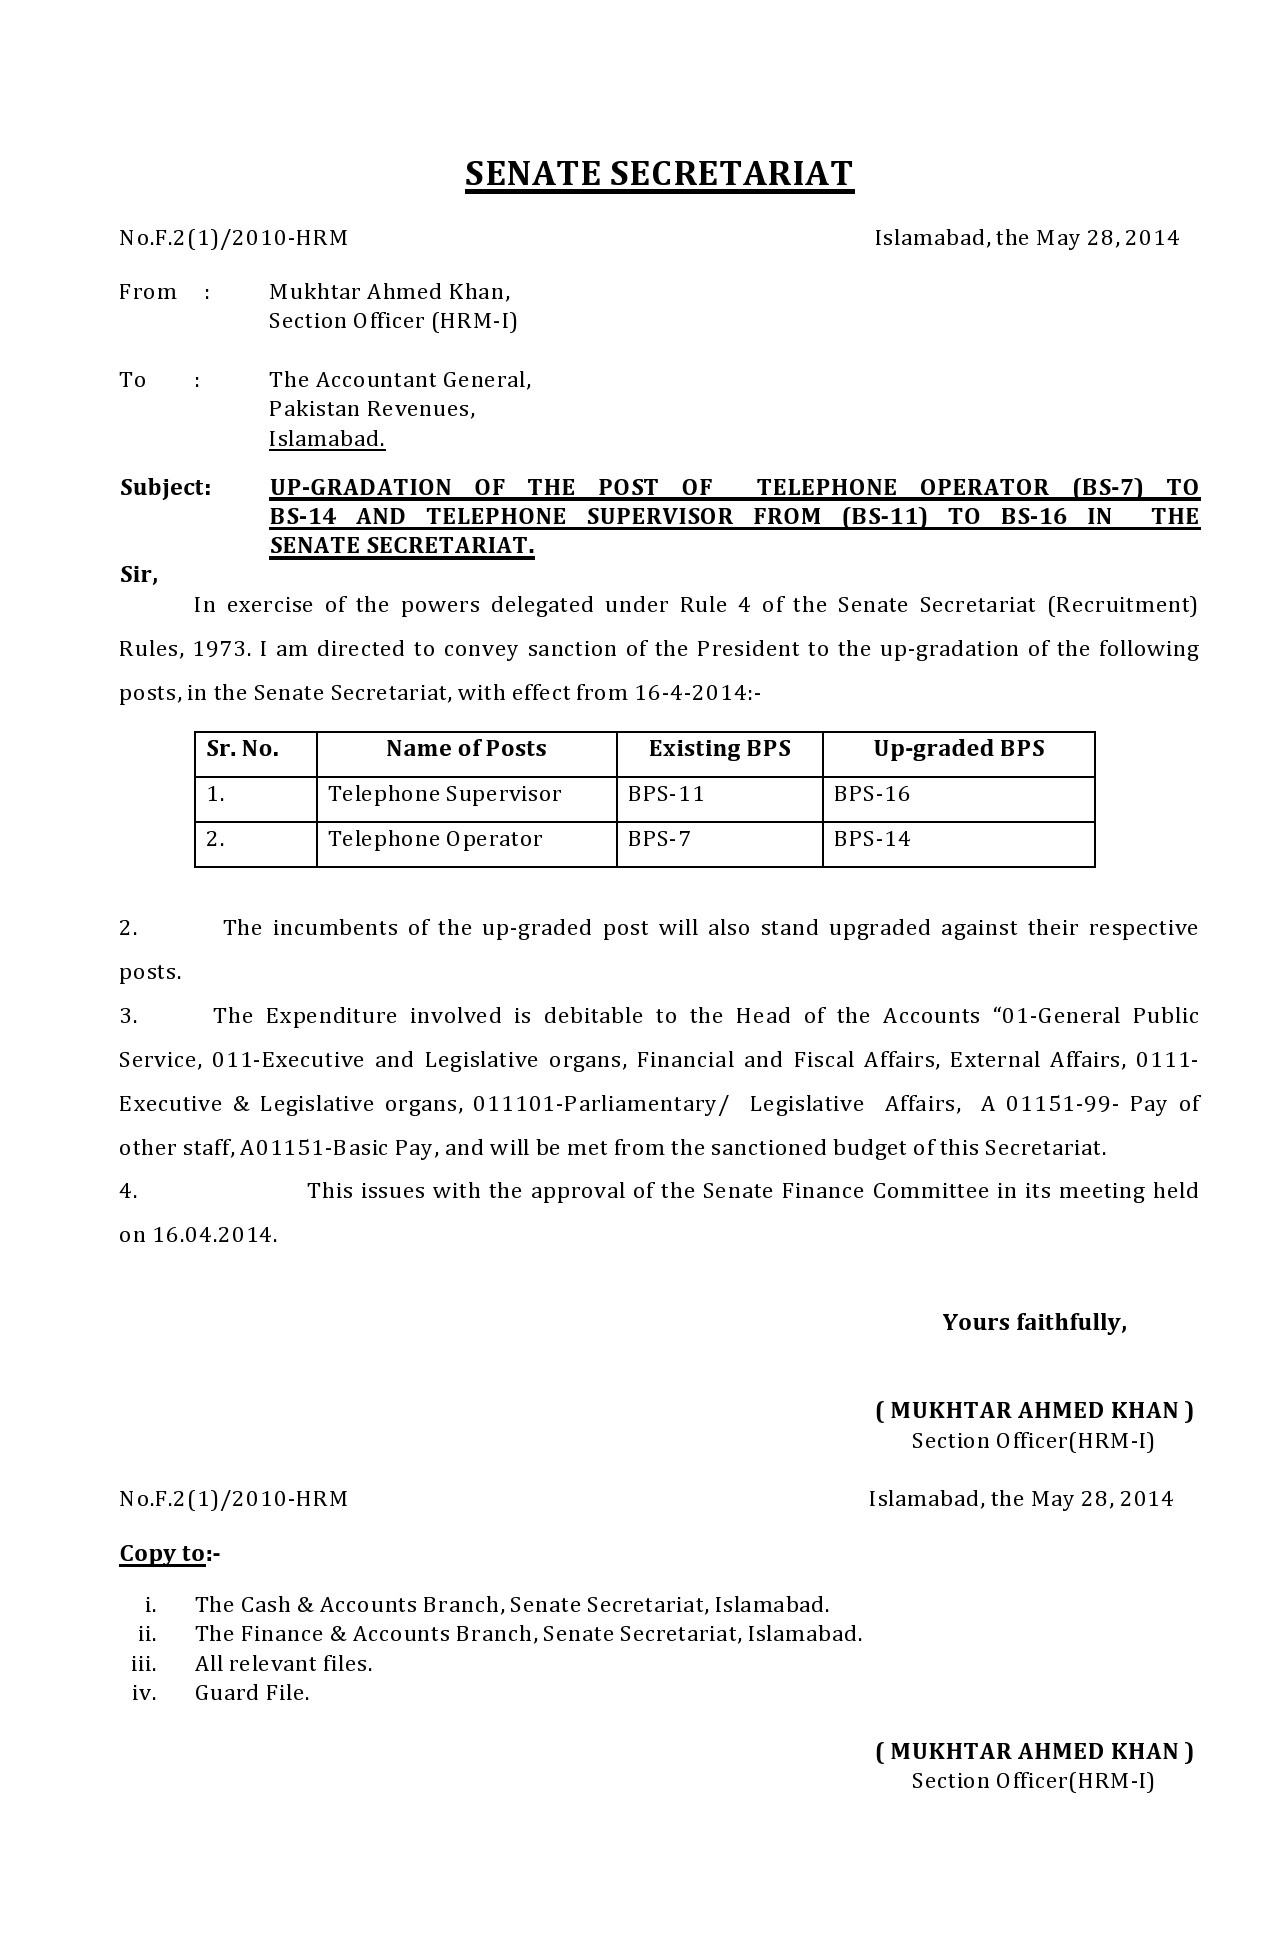 Telephone Operators Upgradation